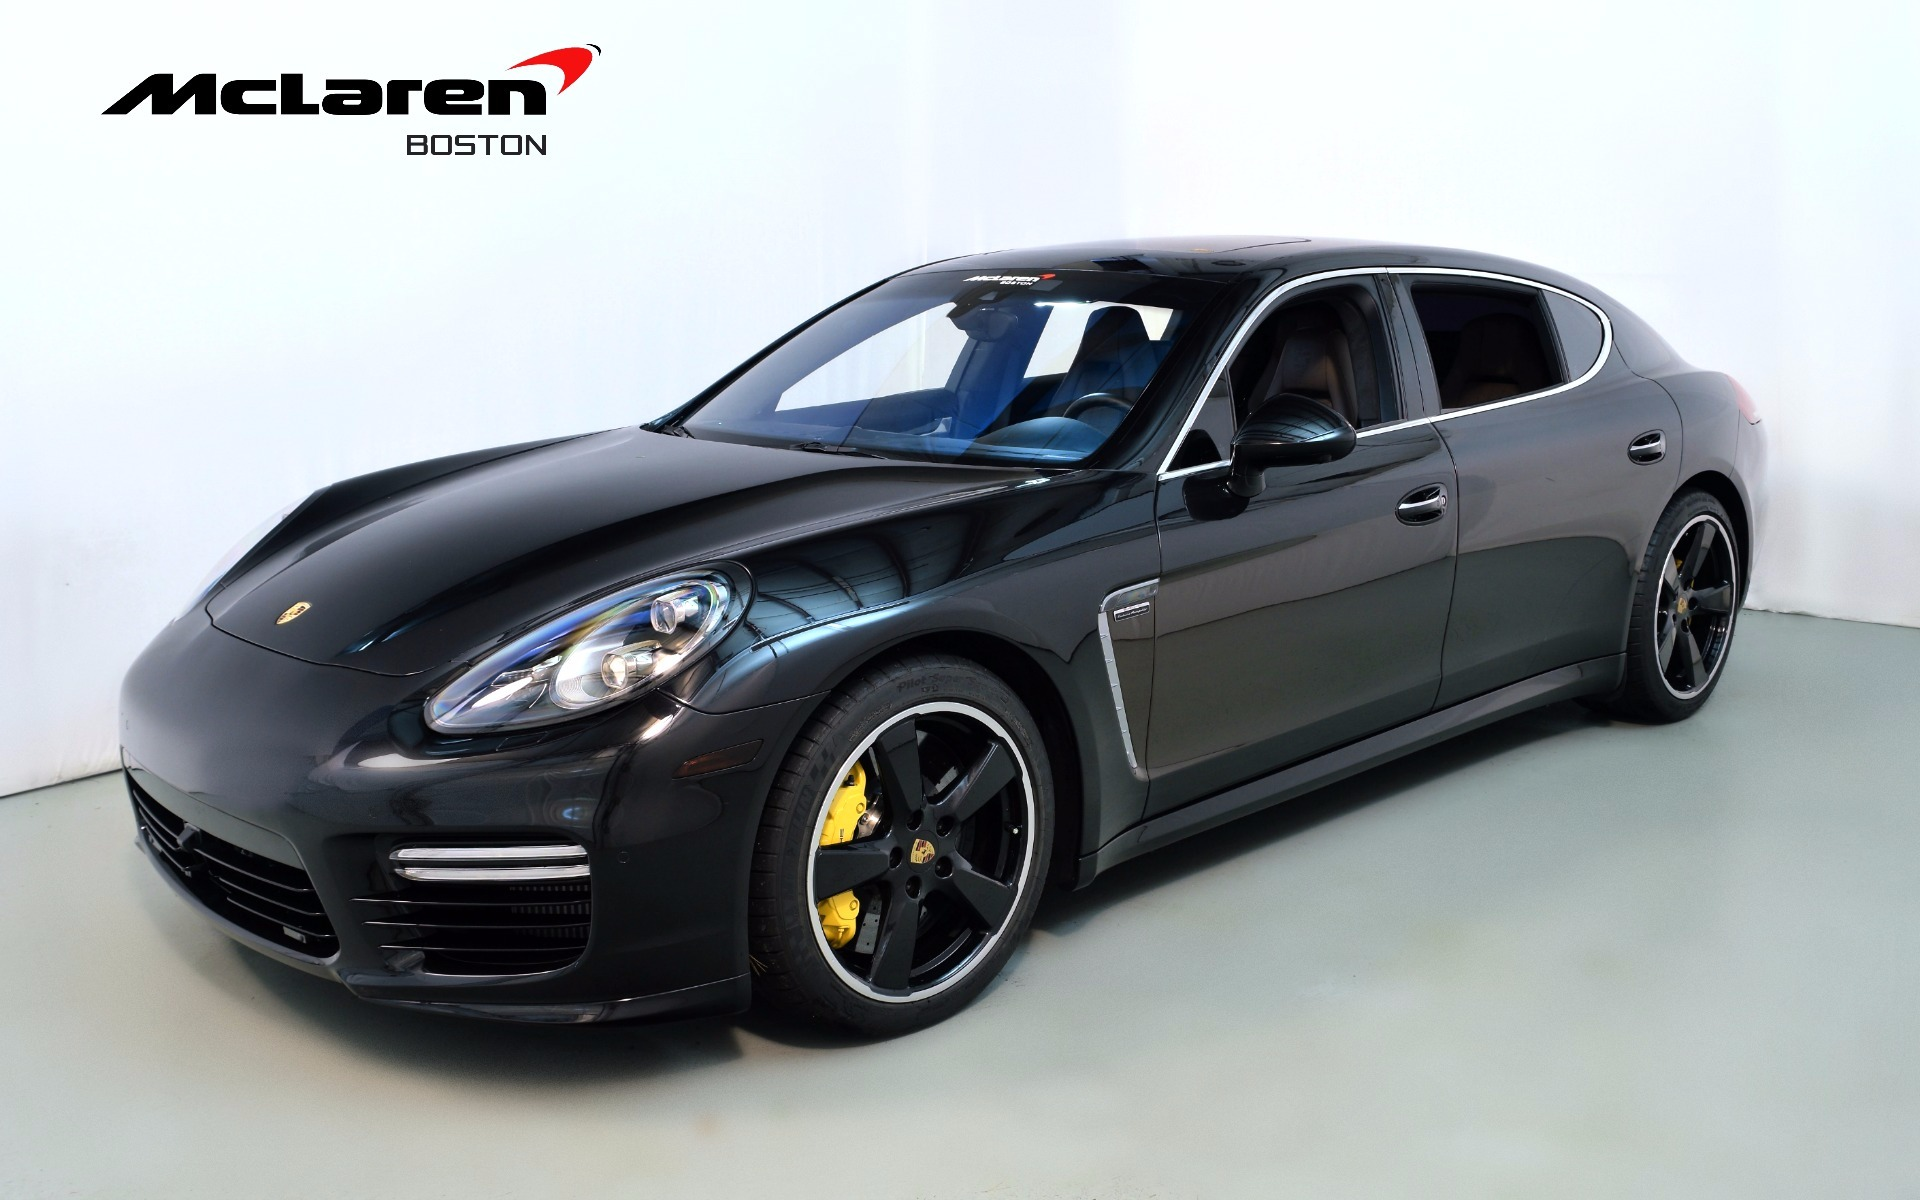 2016 porsche panamera exclusive turbo executive for sale in norwell ma 075054 mclaren boston. Black Bedroom Furniture Sets. Home Design Ideas